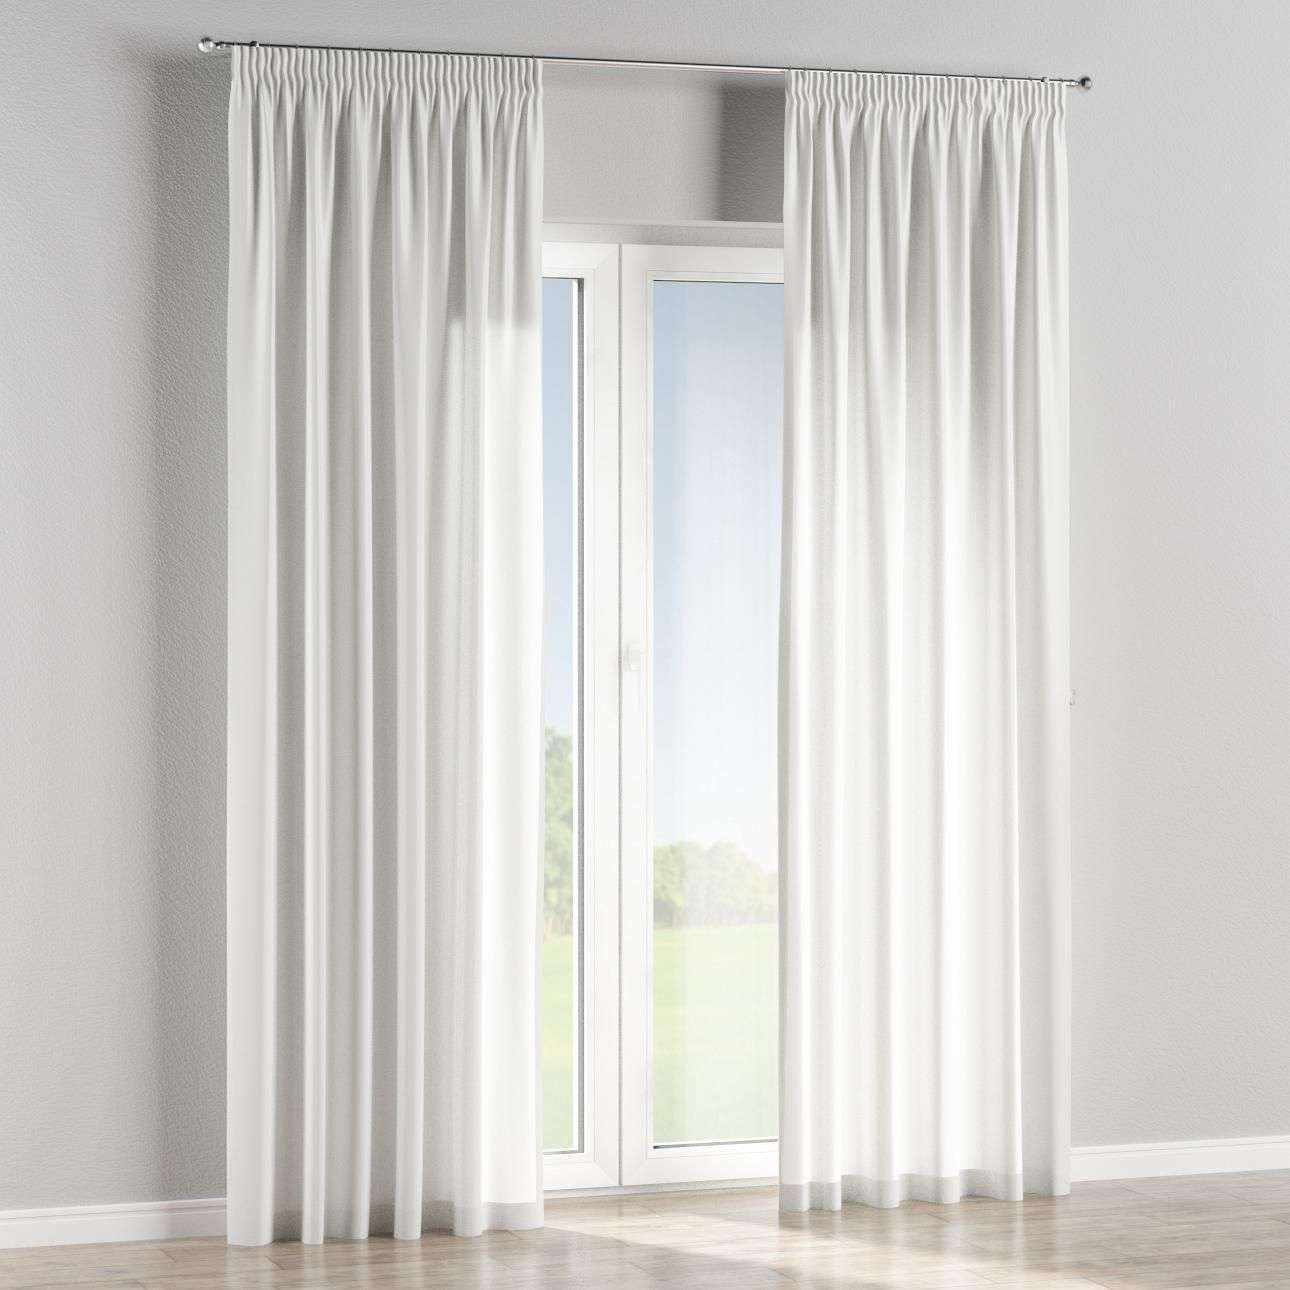 Pencil pleat curtains in collection Marina, fabric: 140-13